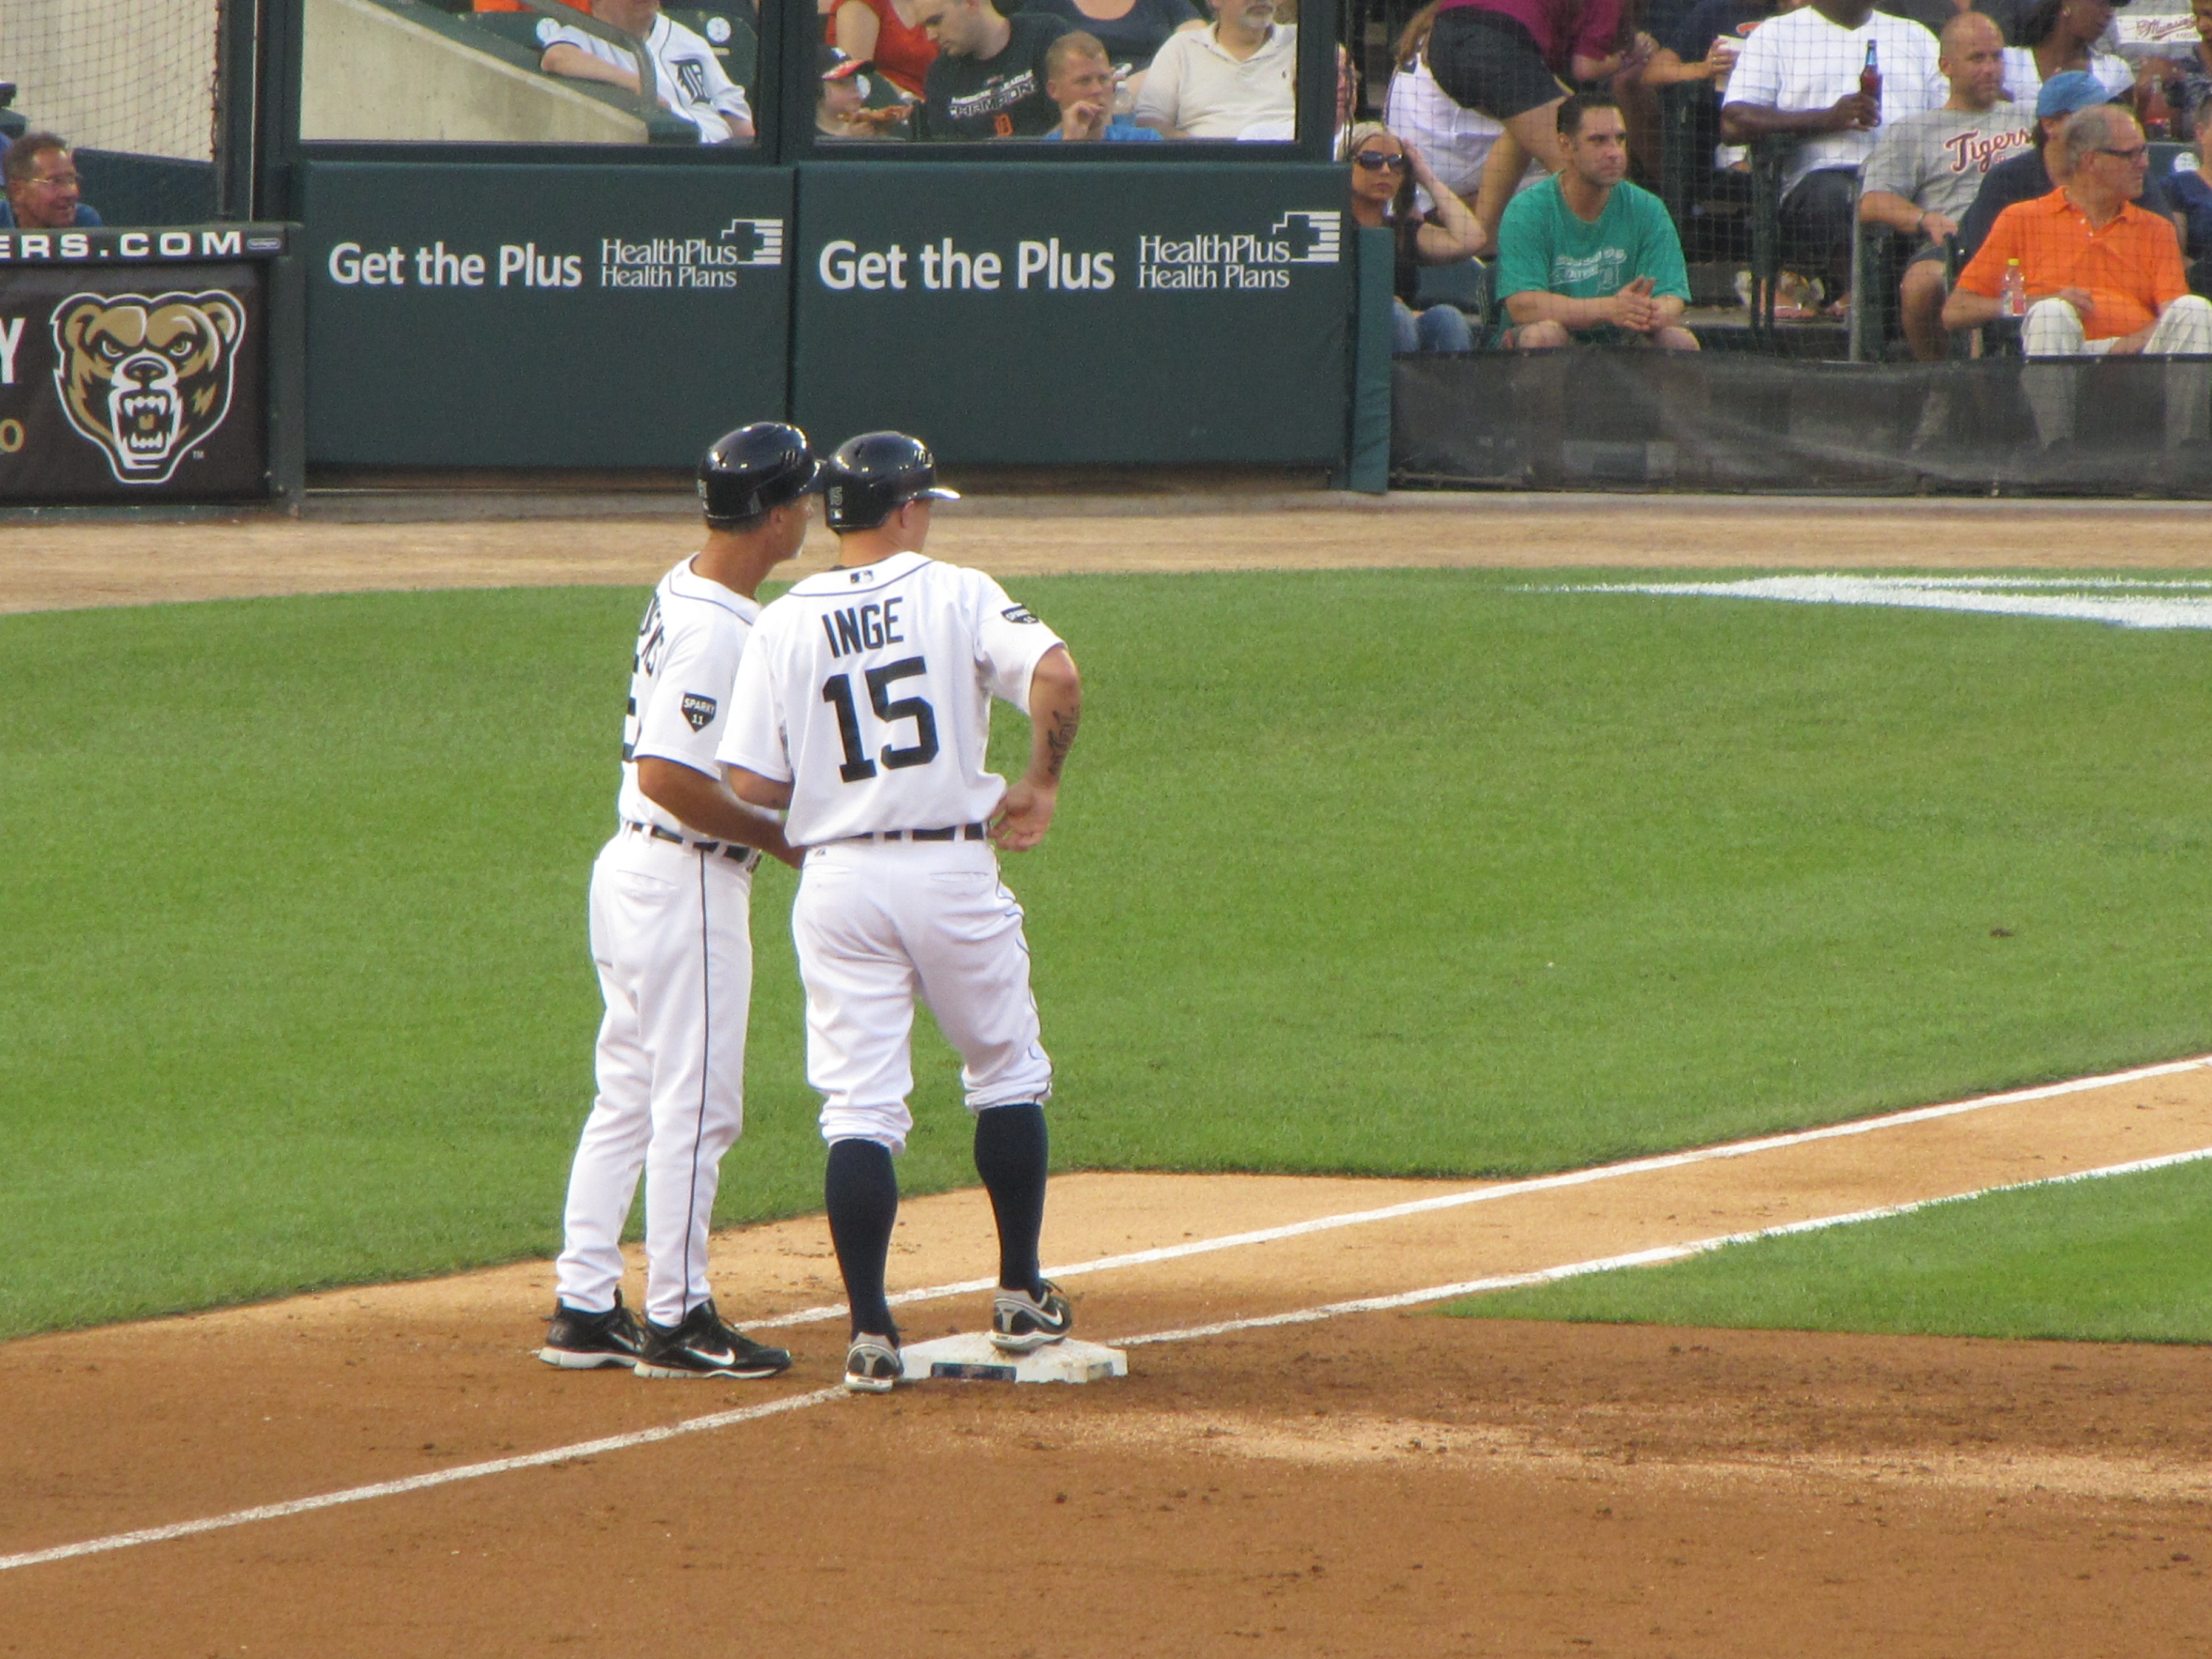 my favorite play of the game was cabrera stealing second in the first inning the highlight inning was definitely the th when brandon inge number  led : american colonial homes brandon inge